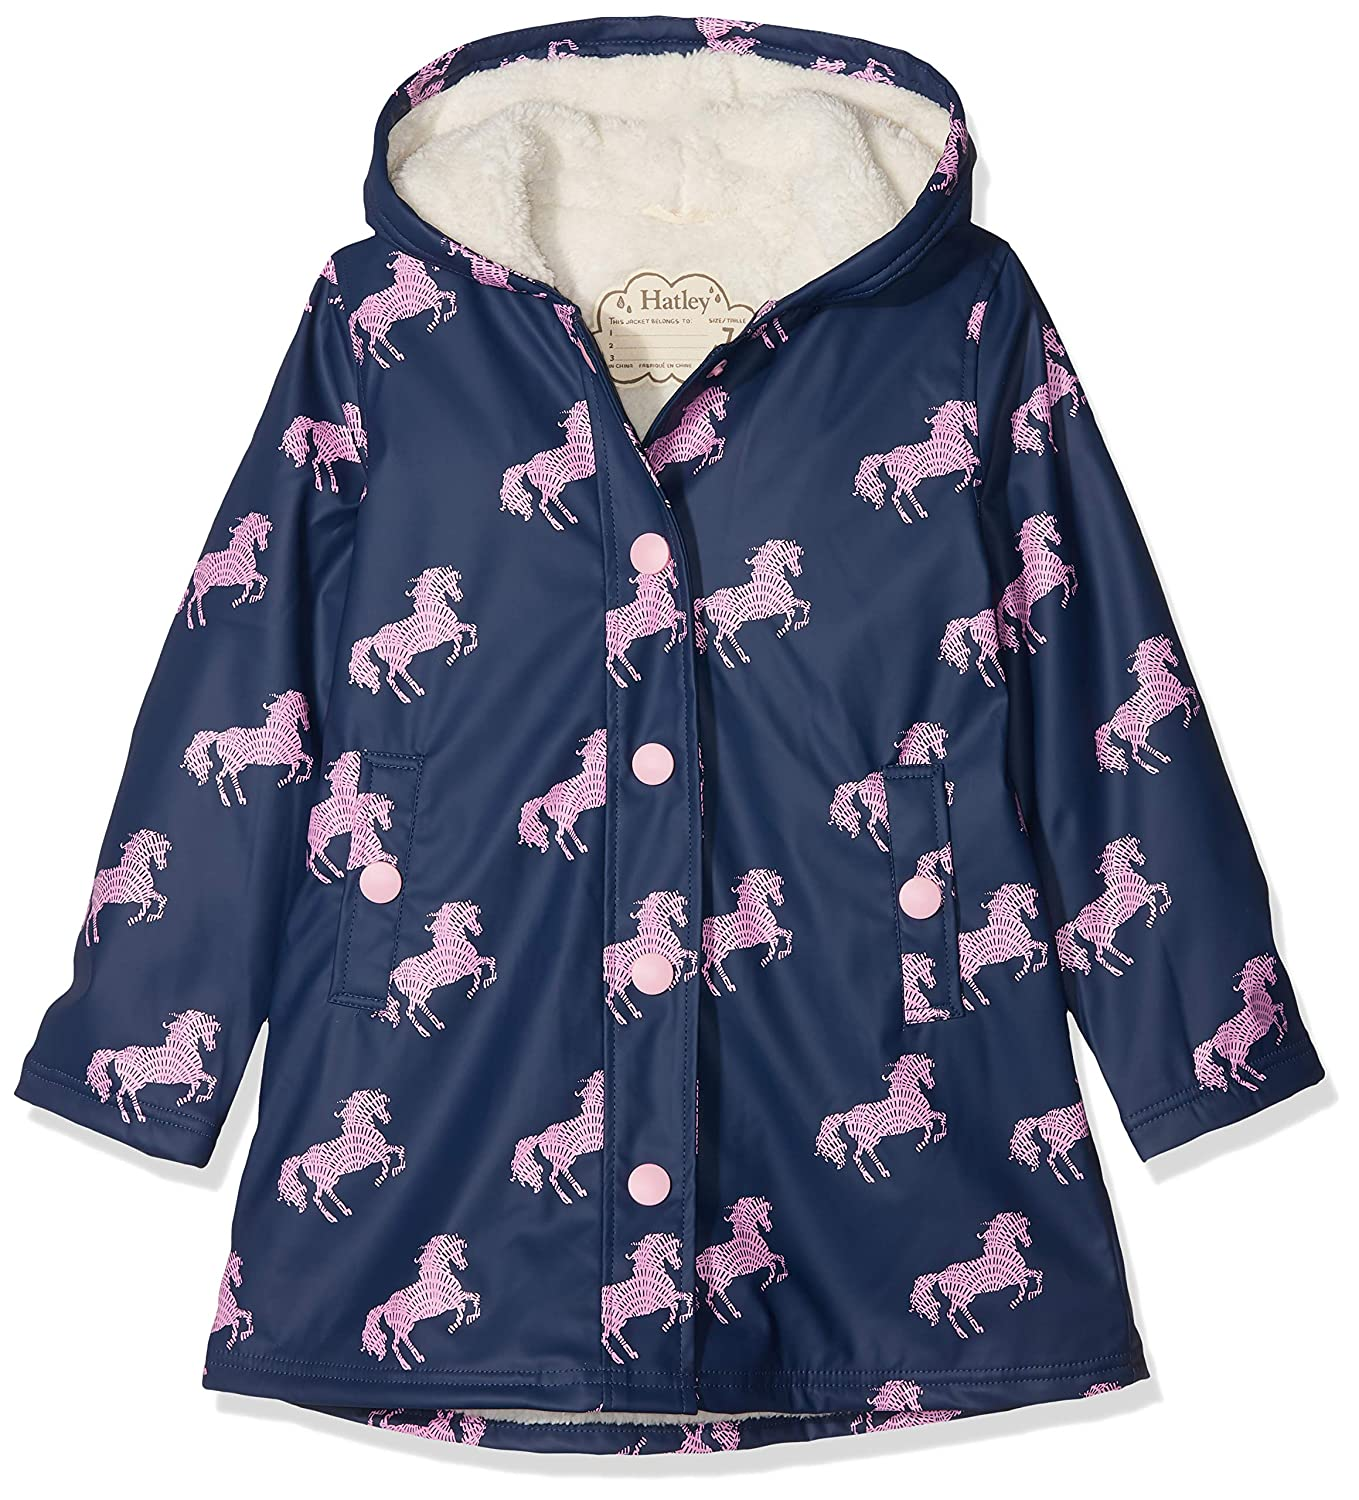 Hatley Girls' Sherpa Lined Splash Jacket Hatley Children's Apparel RC8SP